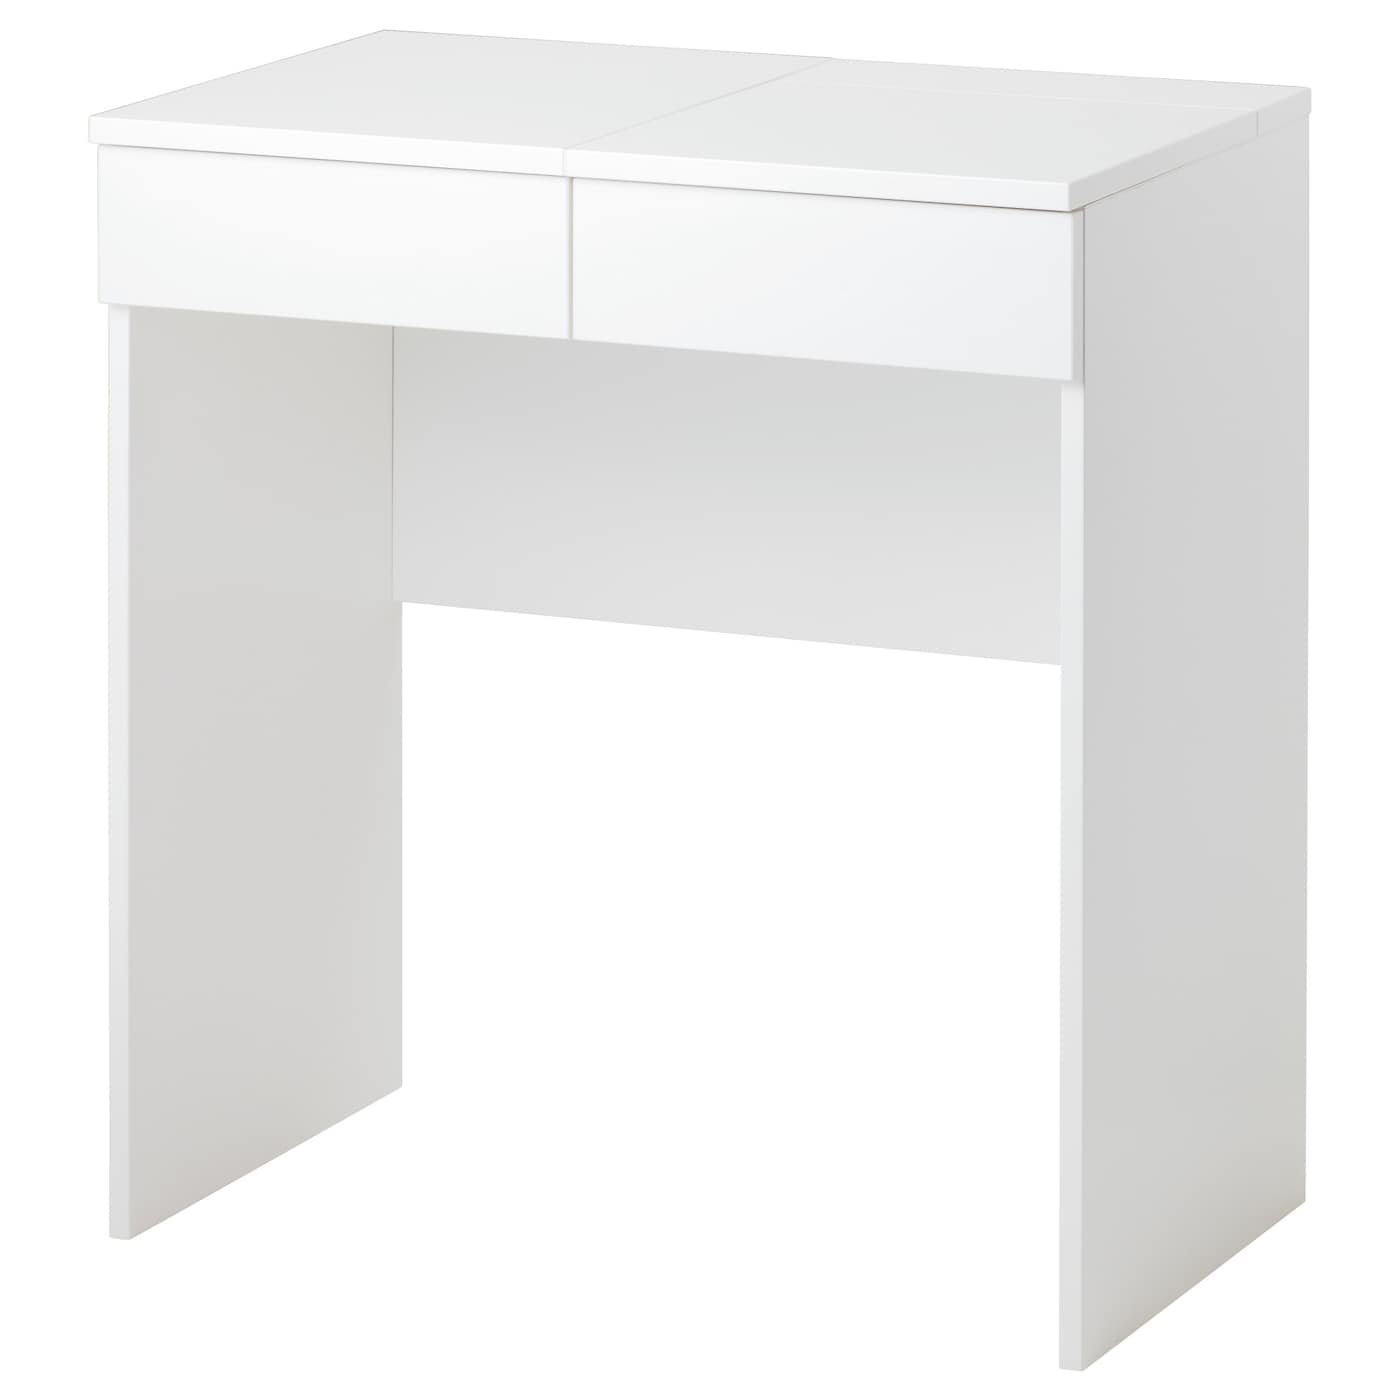 brimnes dressing table white 70x42 cm ikea. Black Bedroom Furniture Sets. Home Design Ideas